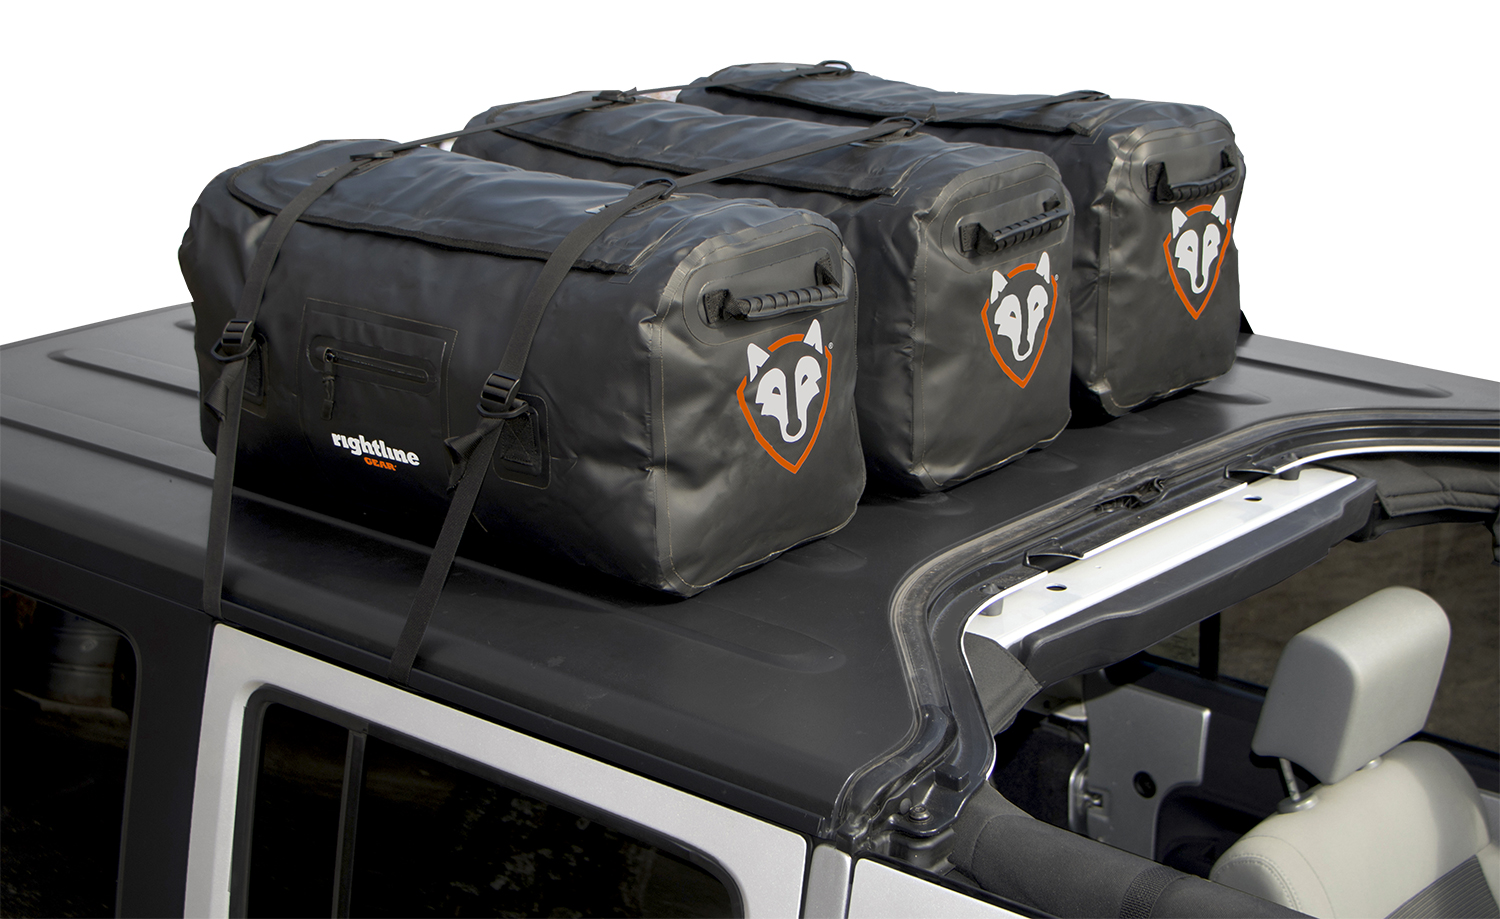 Rightline Auto Duffle Bag Ships Free And Price Match